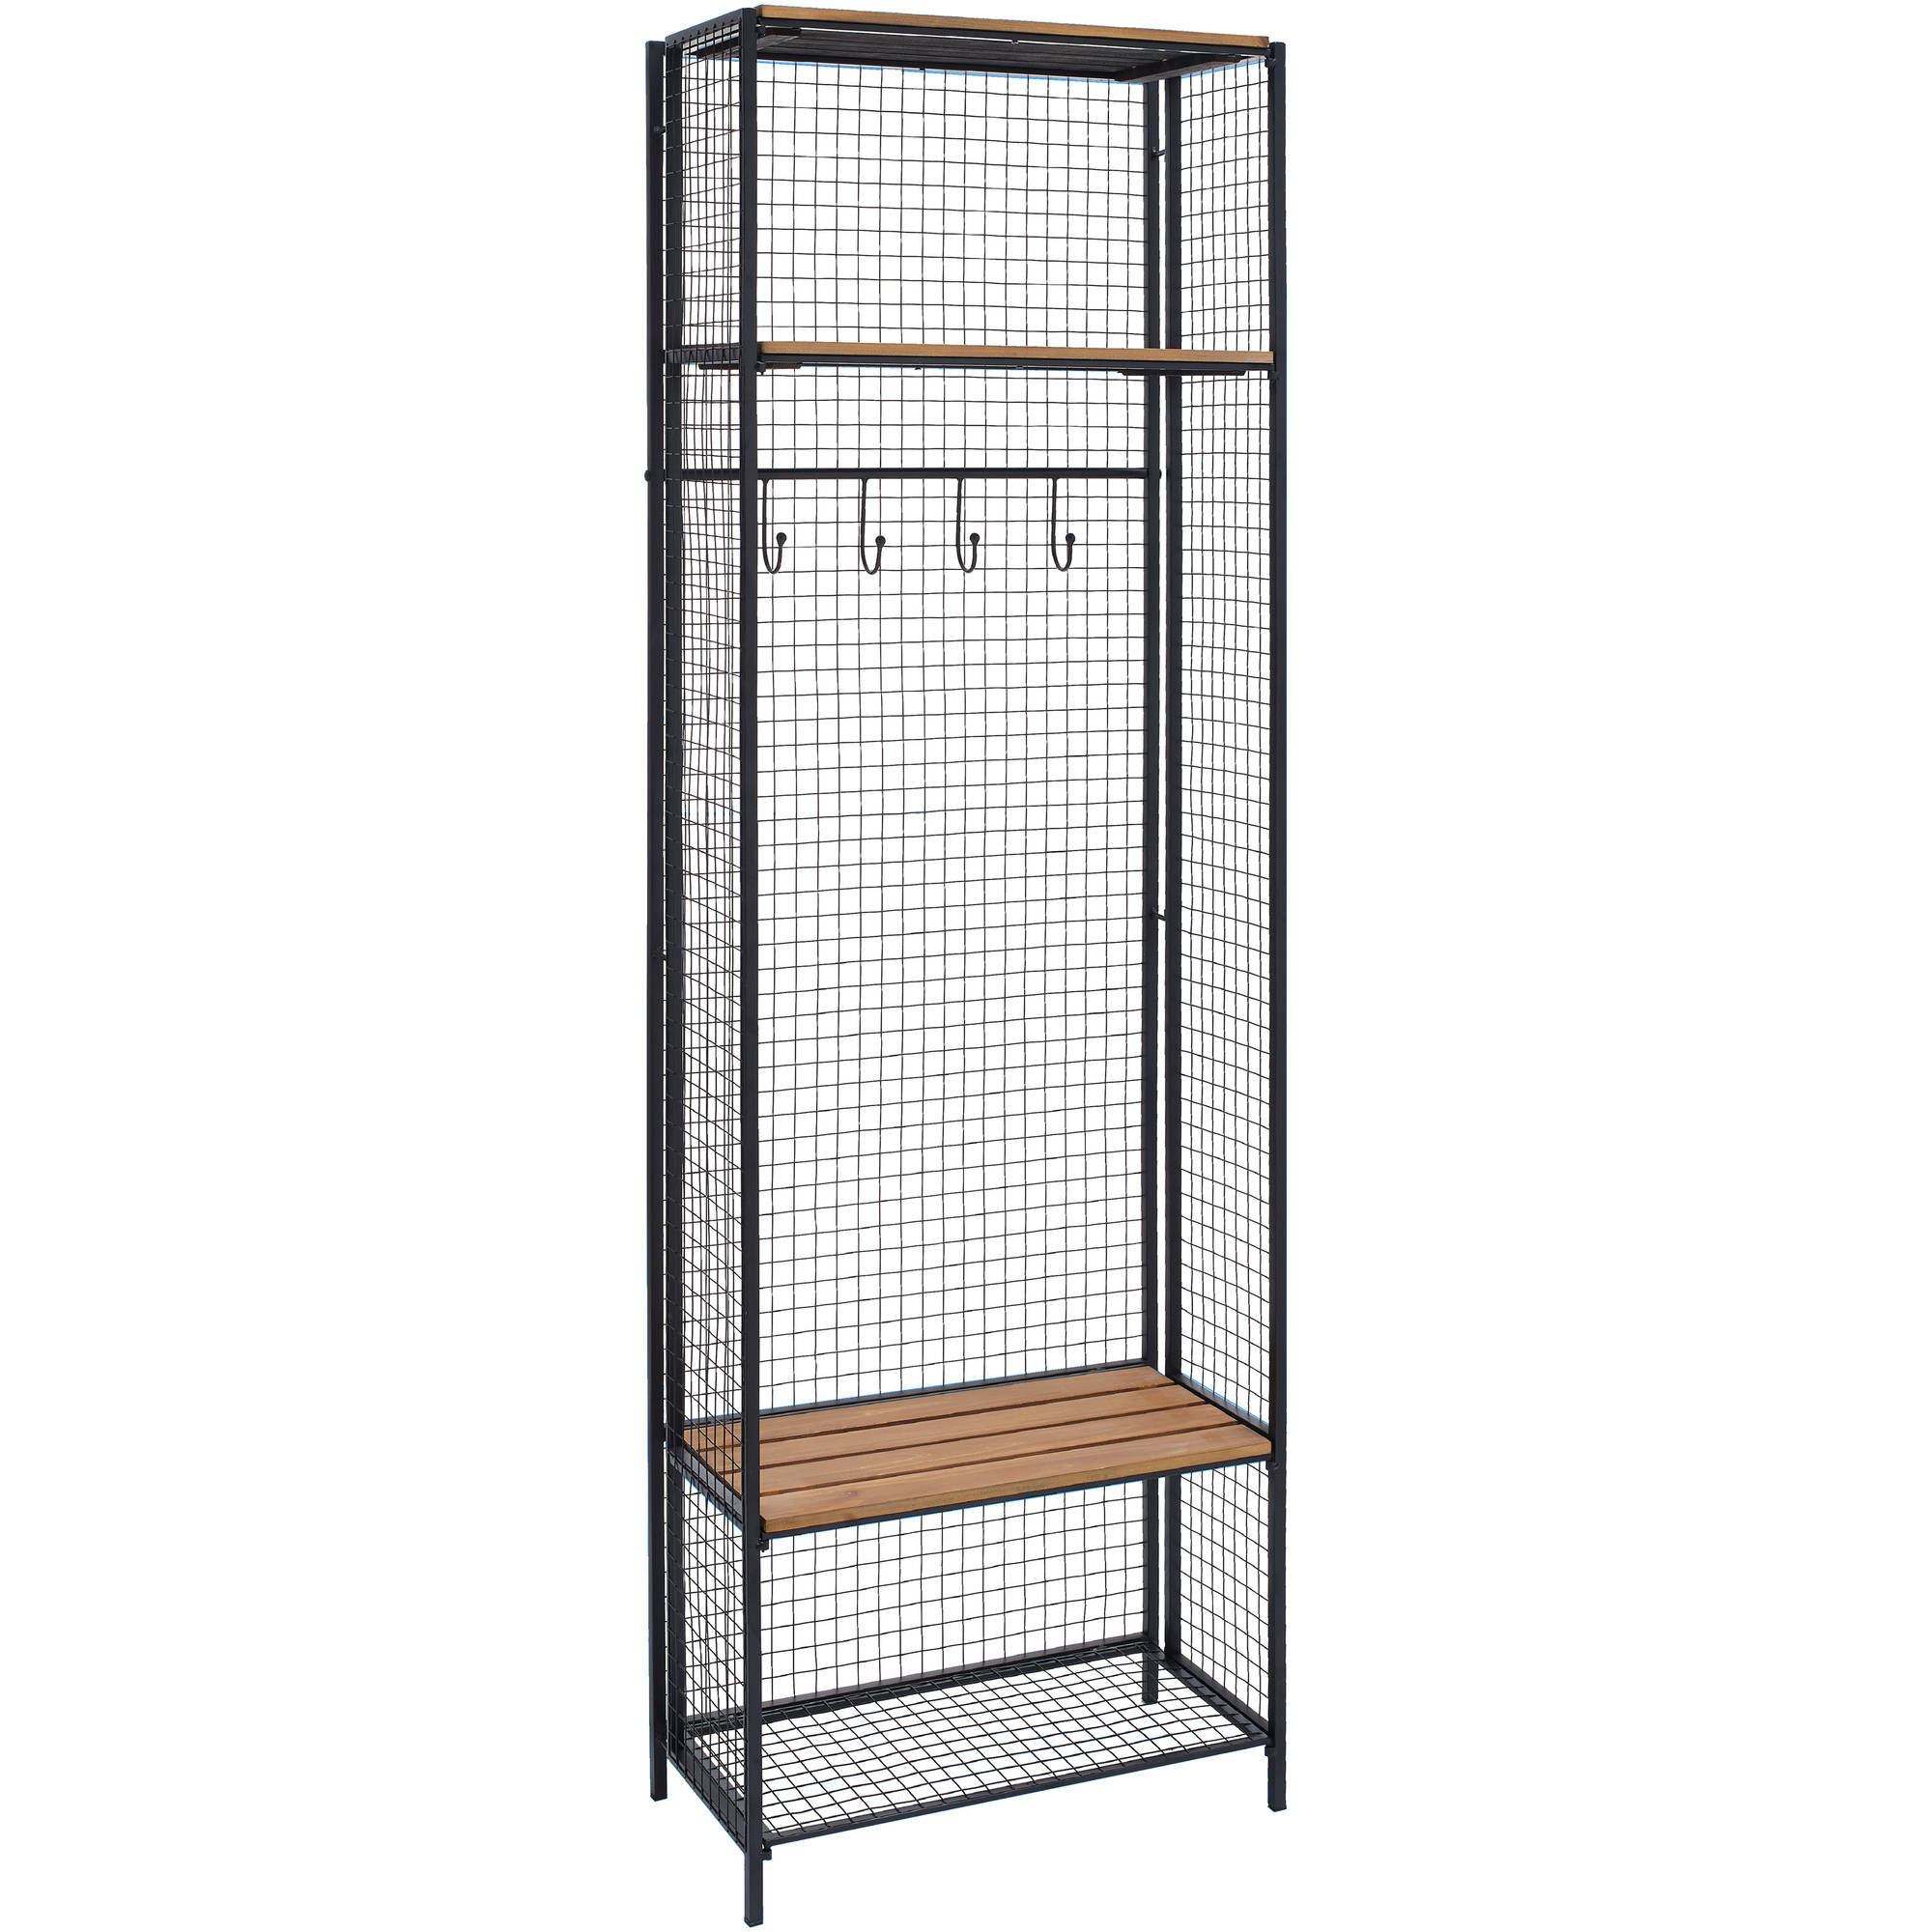 Linon Grid Metal and Wood Locker Coat Rack, 4 Hooks, 2 Shelves